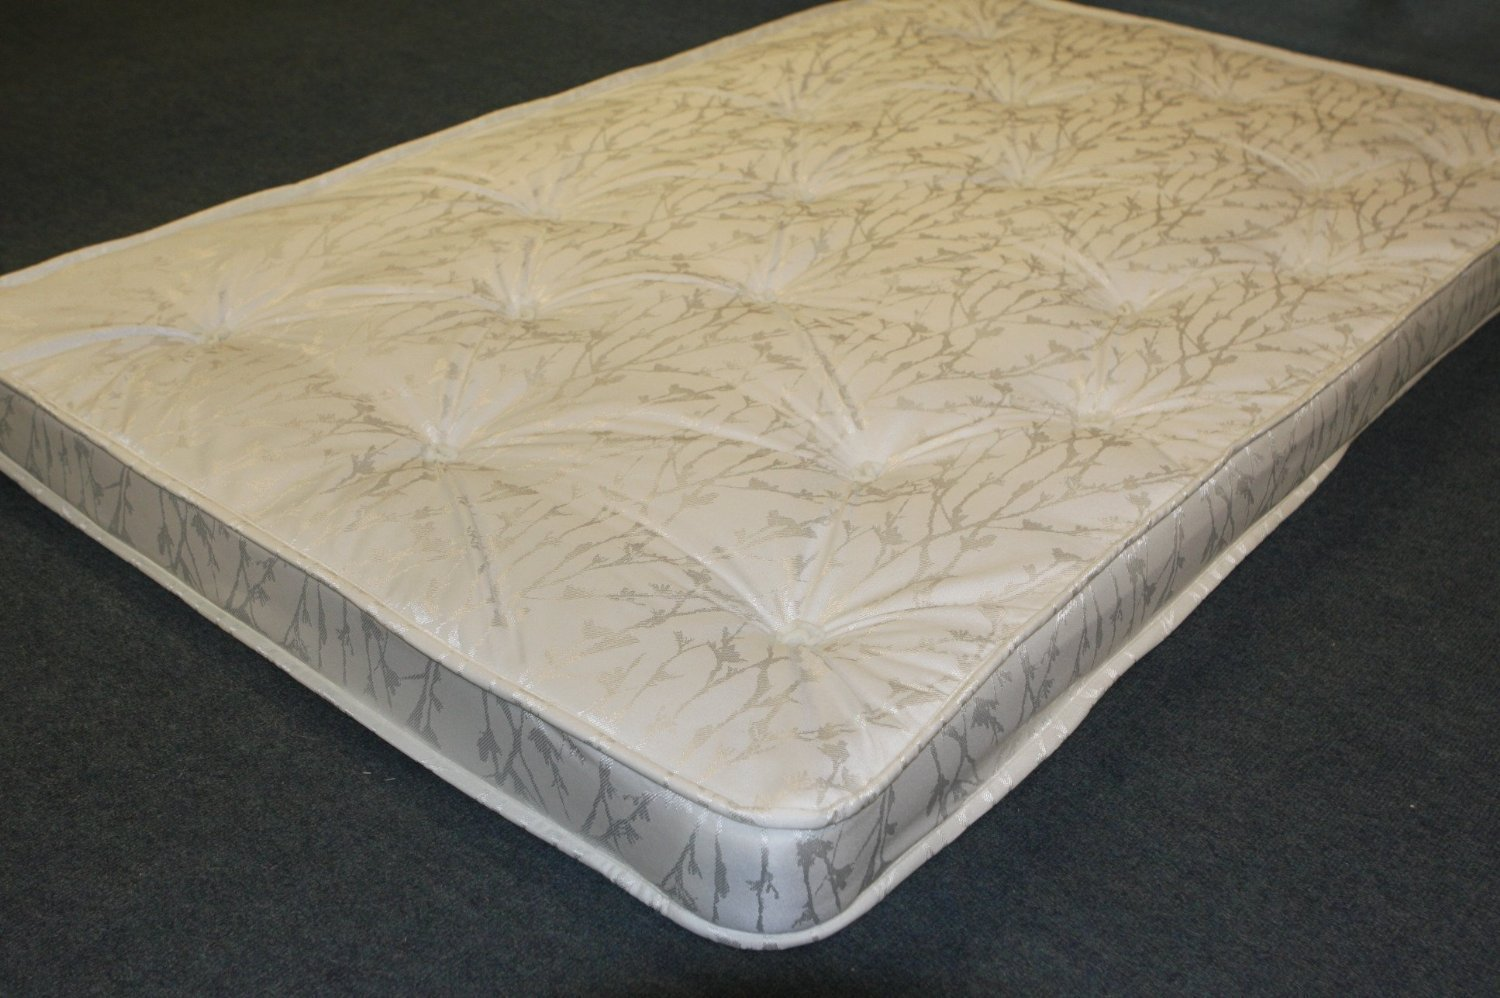 115cm x 181cm SaveOnGoodsUK Replacement spring sofabed bed settee mattress. Metal action sprung Put You Up sofa matress. Double & Small double made to size (Small double 115cm (W) x 181cm (L))